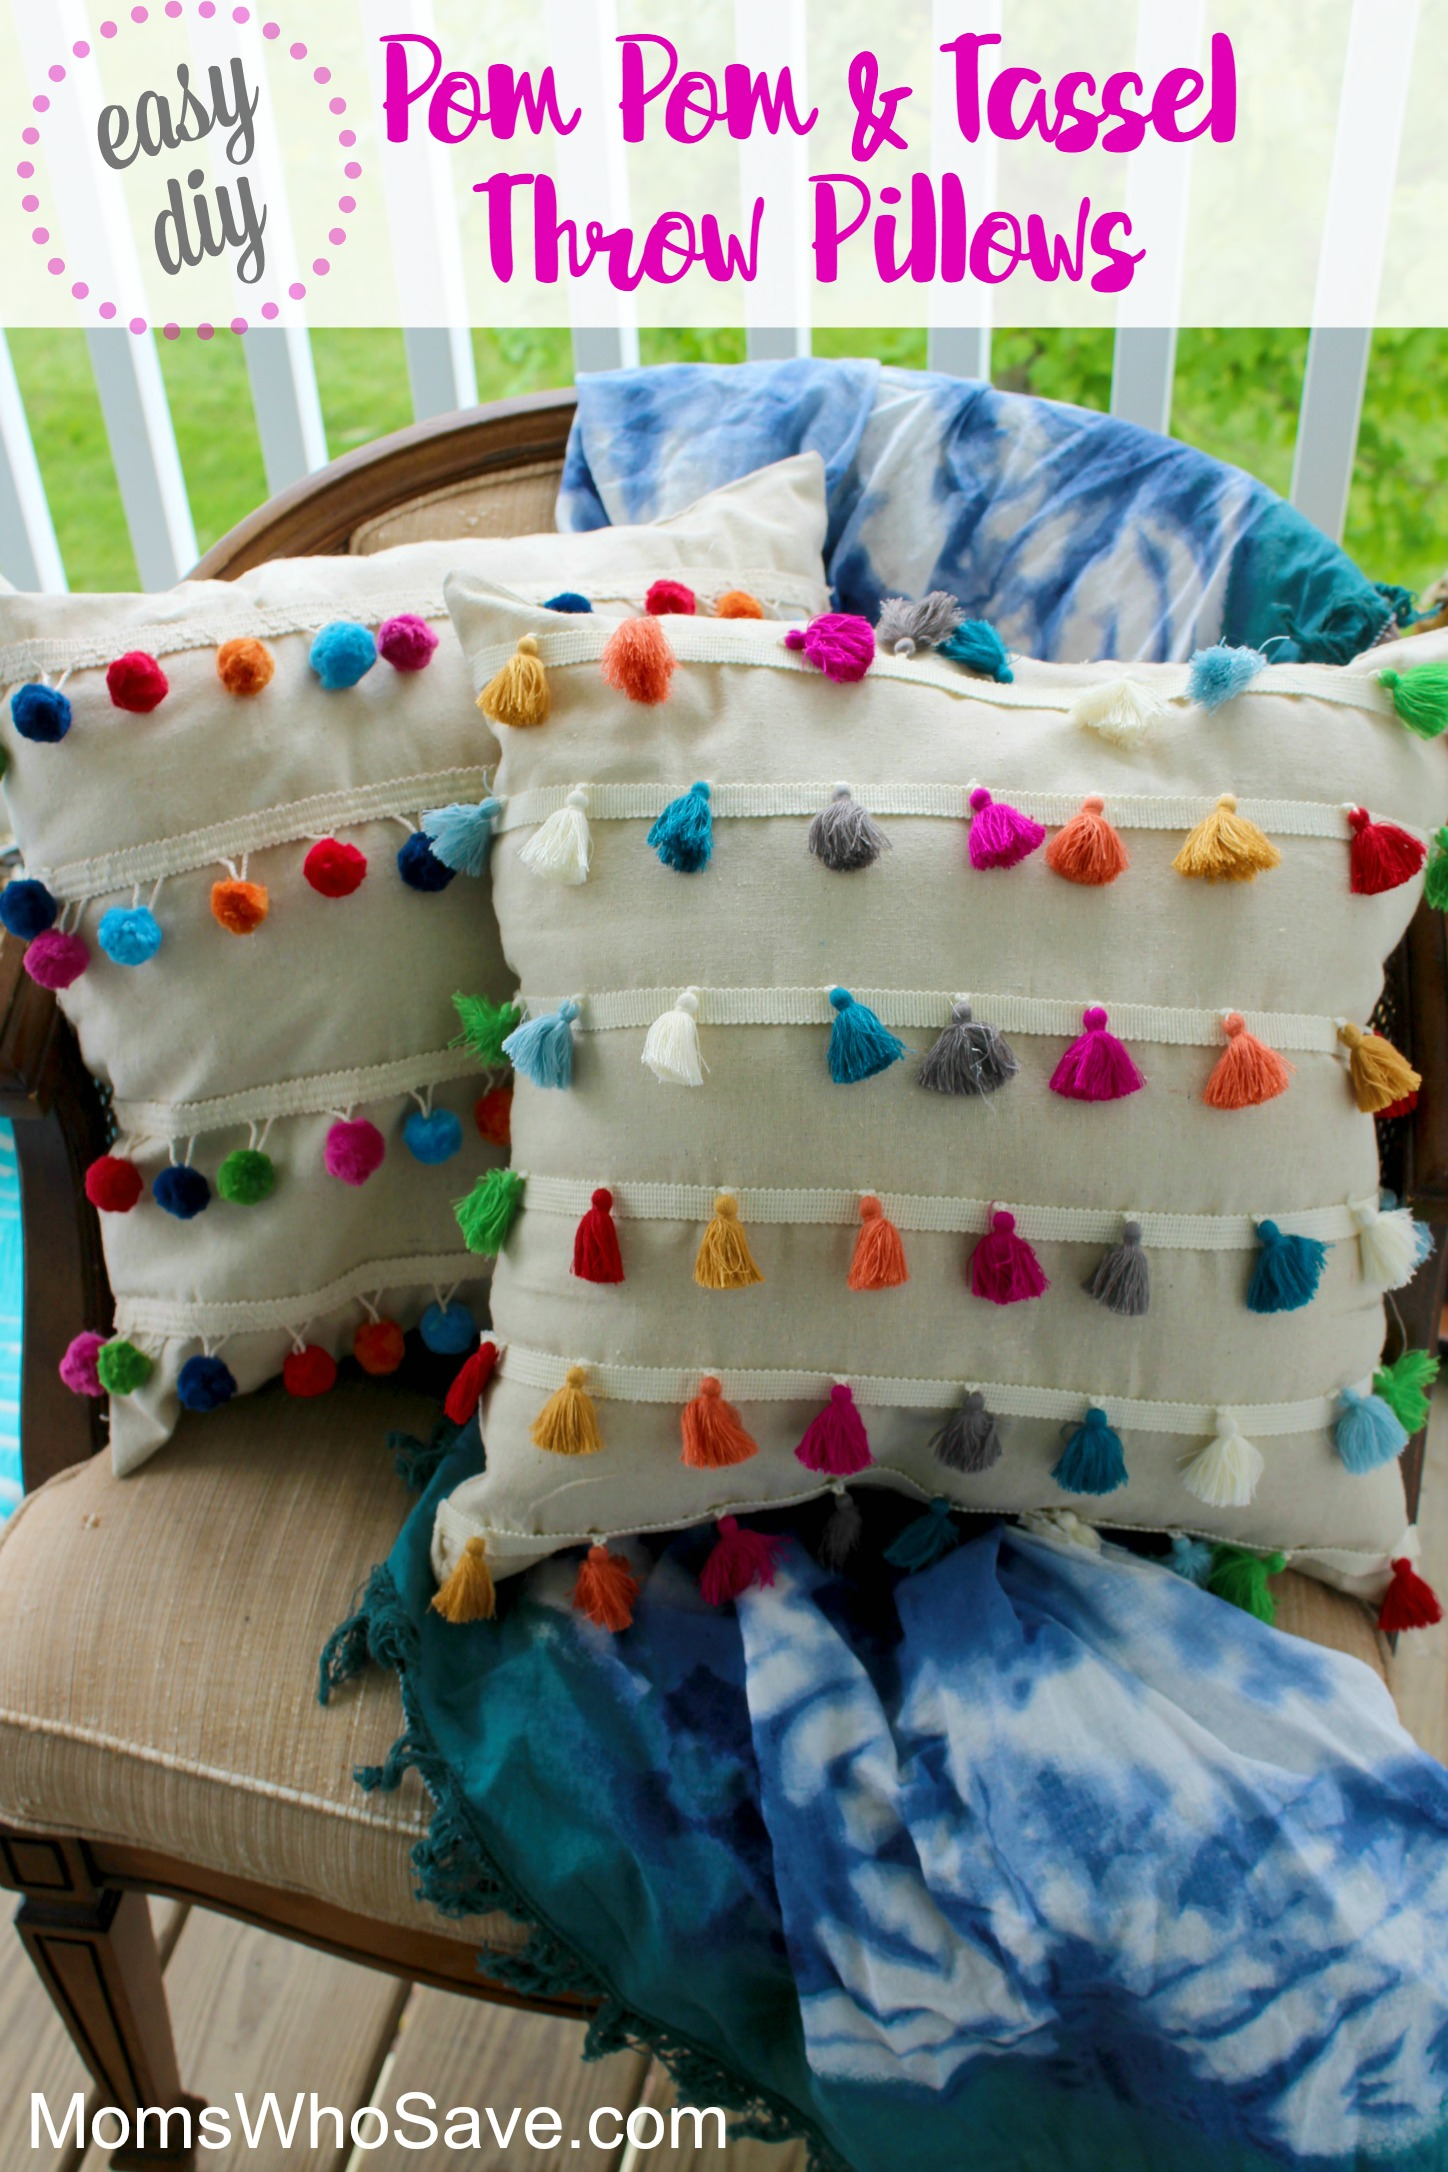 pom pom and tassel throw pillows diy